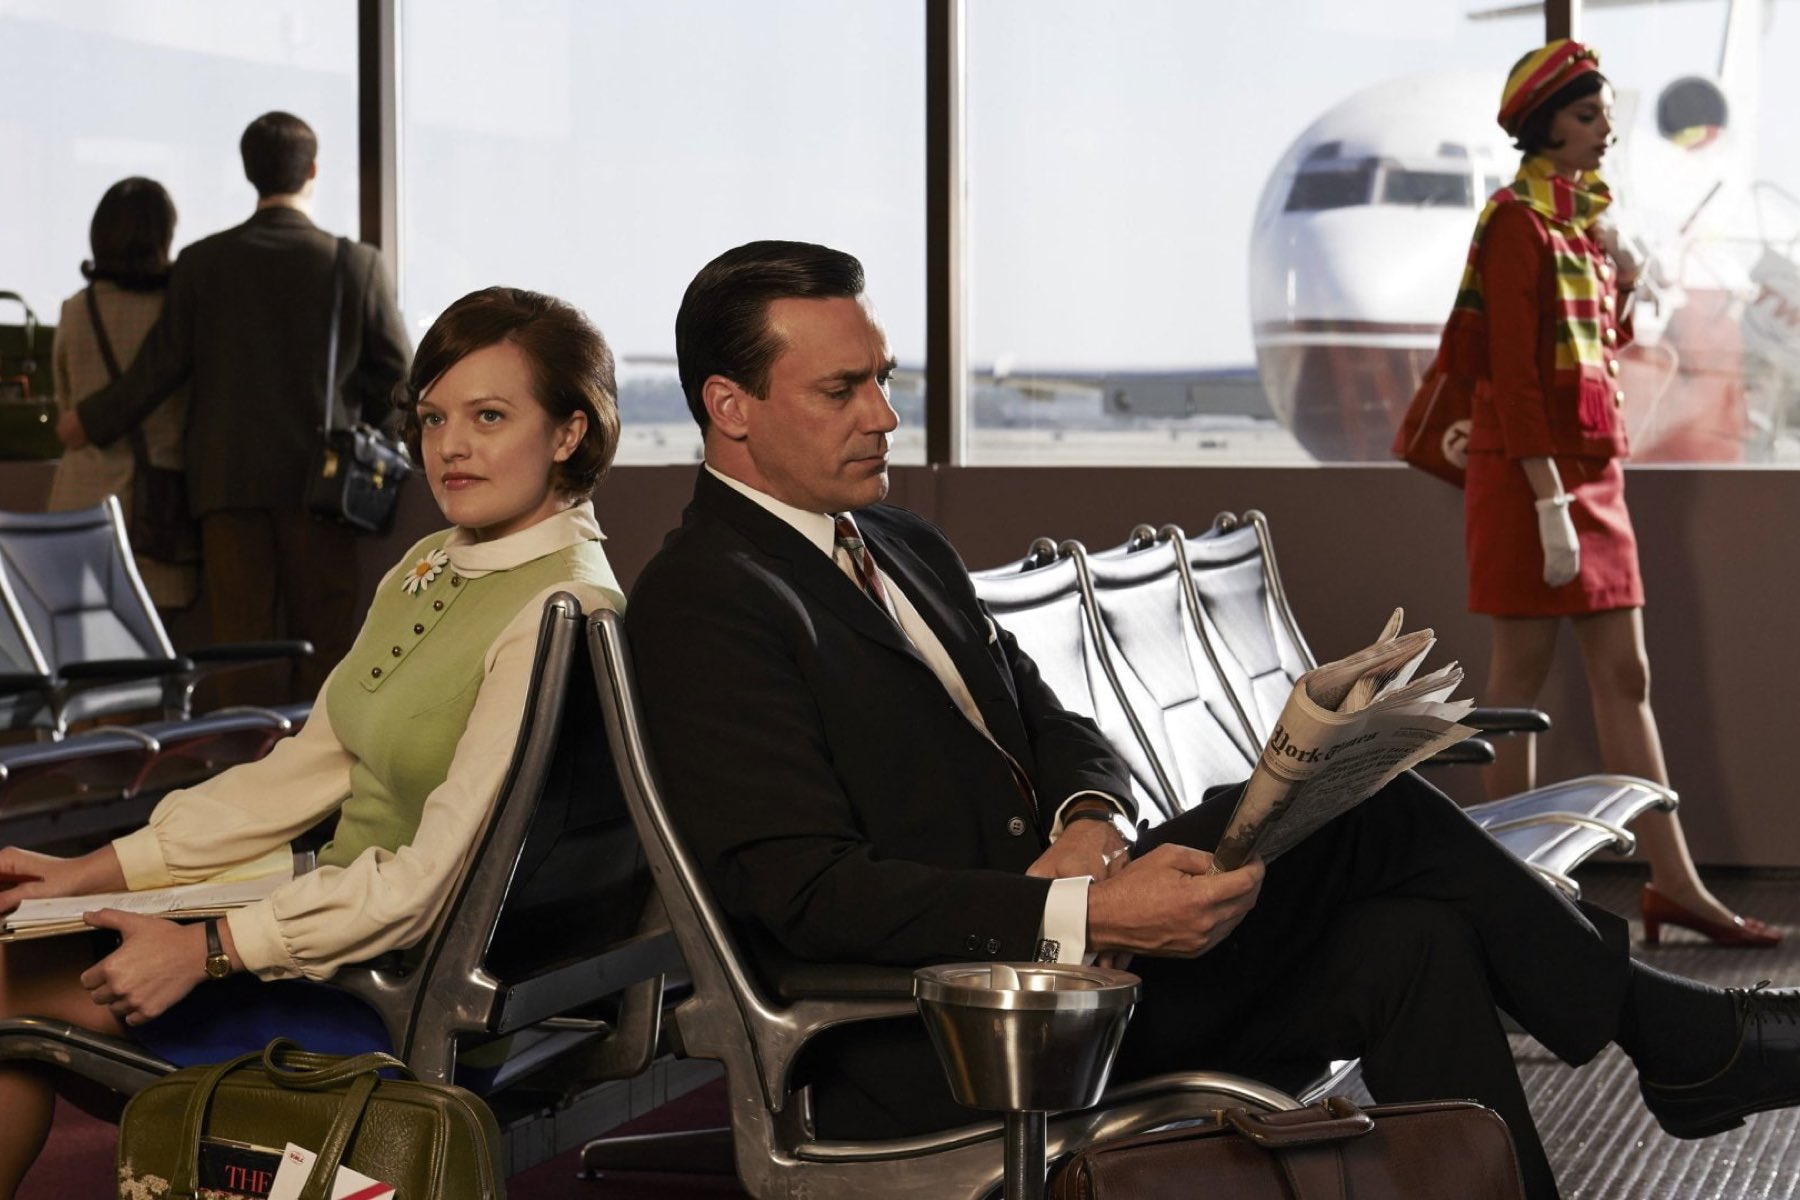 Mad Men: Peggy and Don in an airport